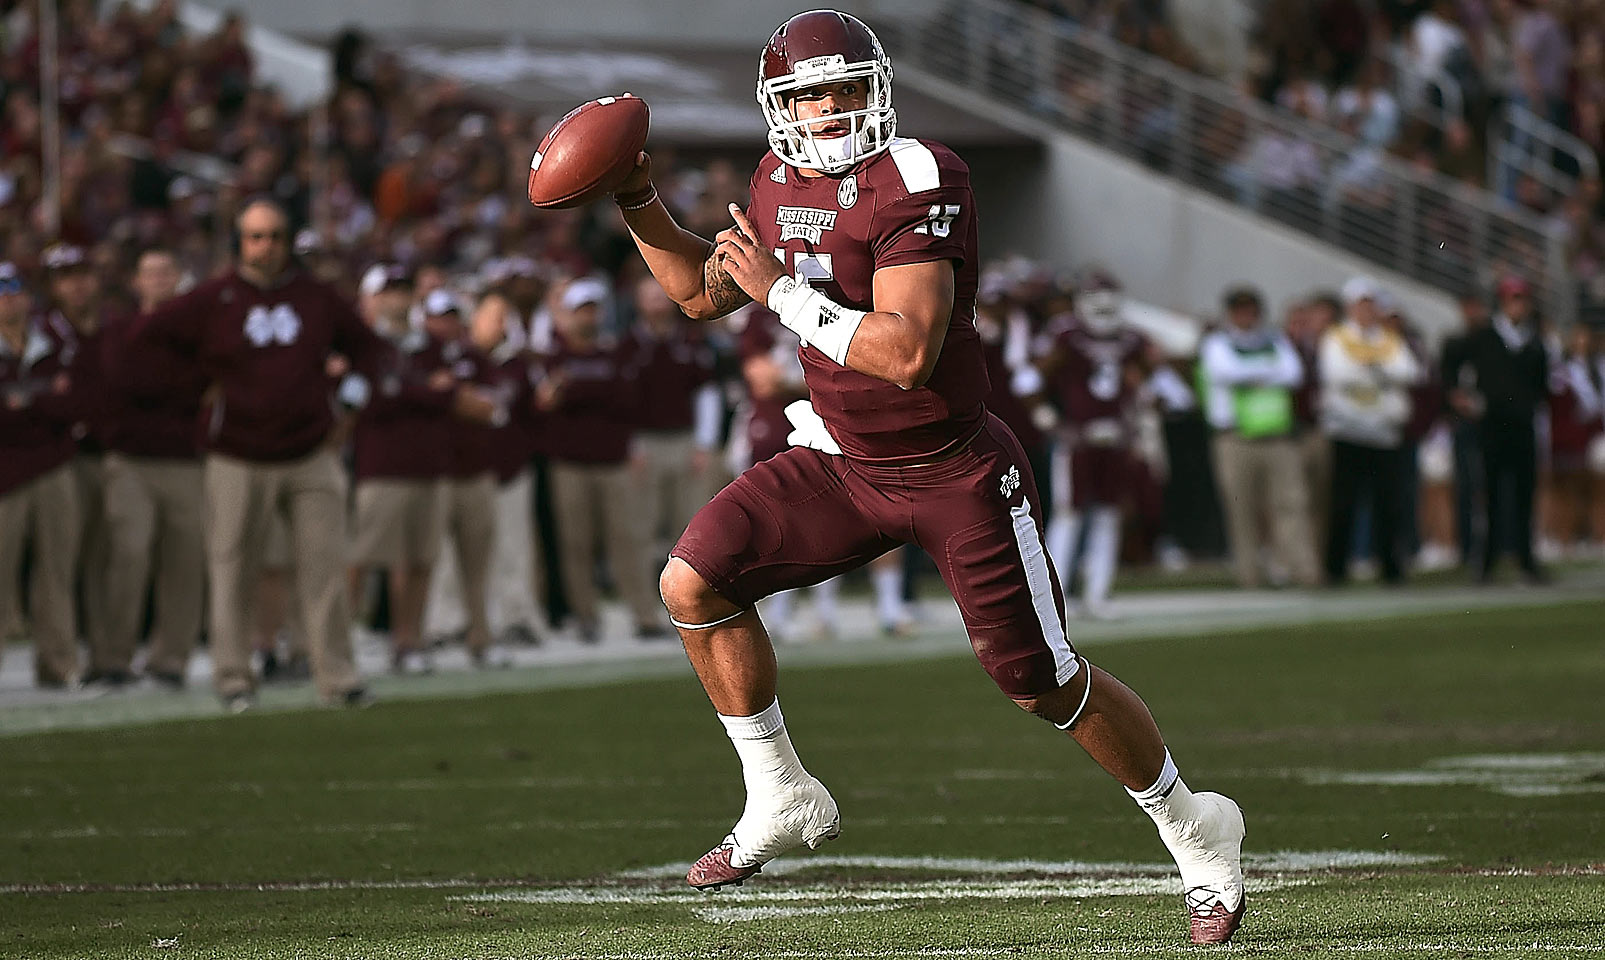 Prescott exploded onto the SEC scene in his junior season as he turned Mississippi State into the top-ranked team by the middle of the season. He threw for over 3,400 yards and nearly ran for 1,000 more. Prescott's presence under center gives the Bulldogs hope in the SEC West.